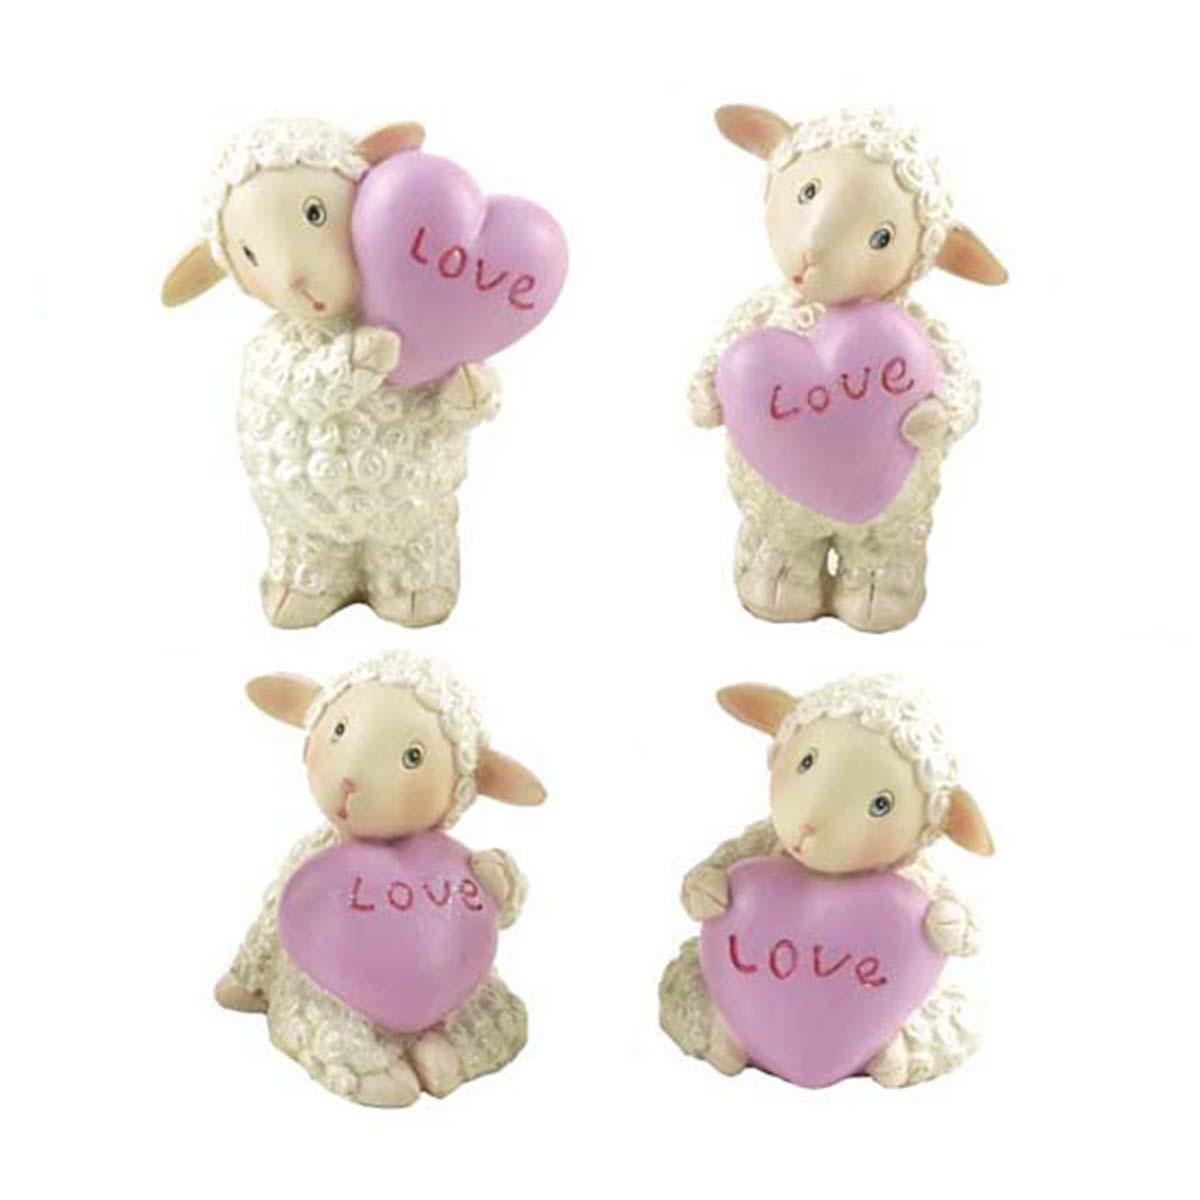 Factory Hot Sales Resin Mini Animal Sheep Figurines Gift for Valentine's Day